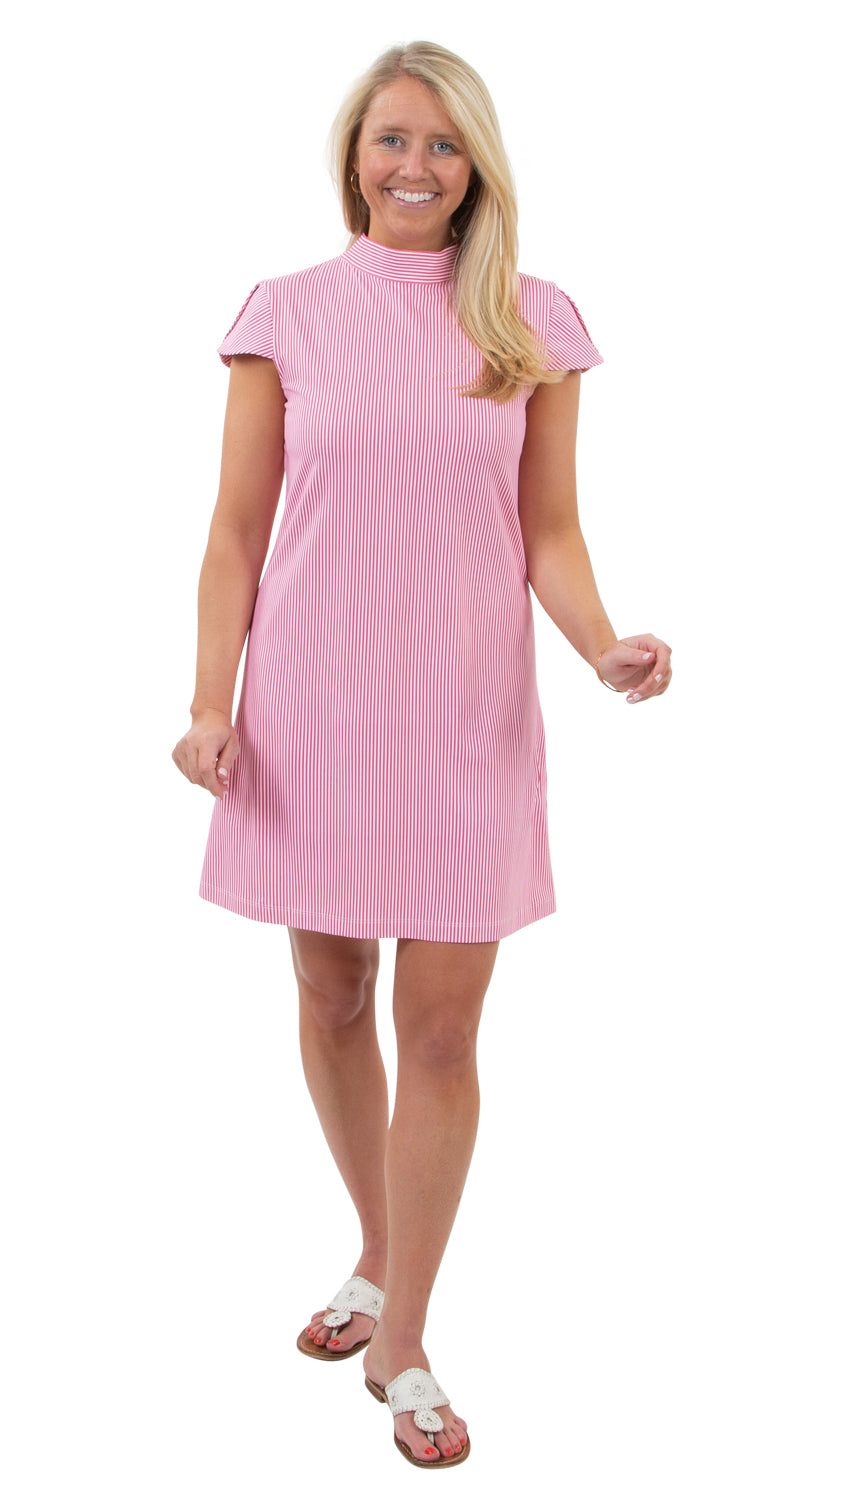 Molly Bow Back Dress - Hot Pink Pinstripe